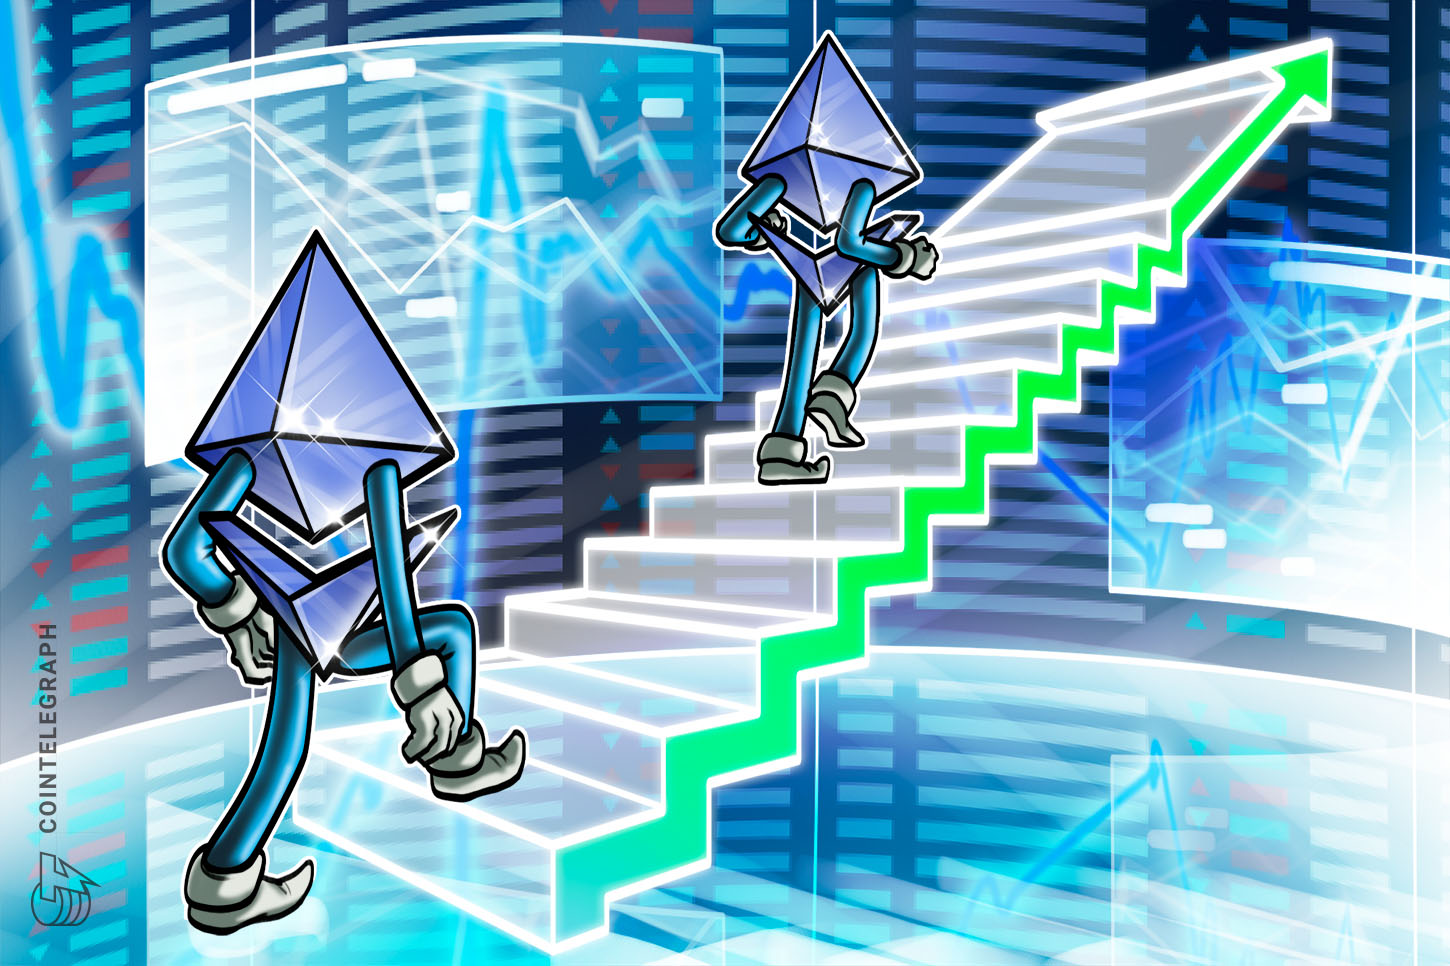 3 reasons why Ethereum can hit $3K in the short term despite overvaluation risks